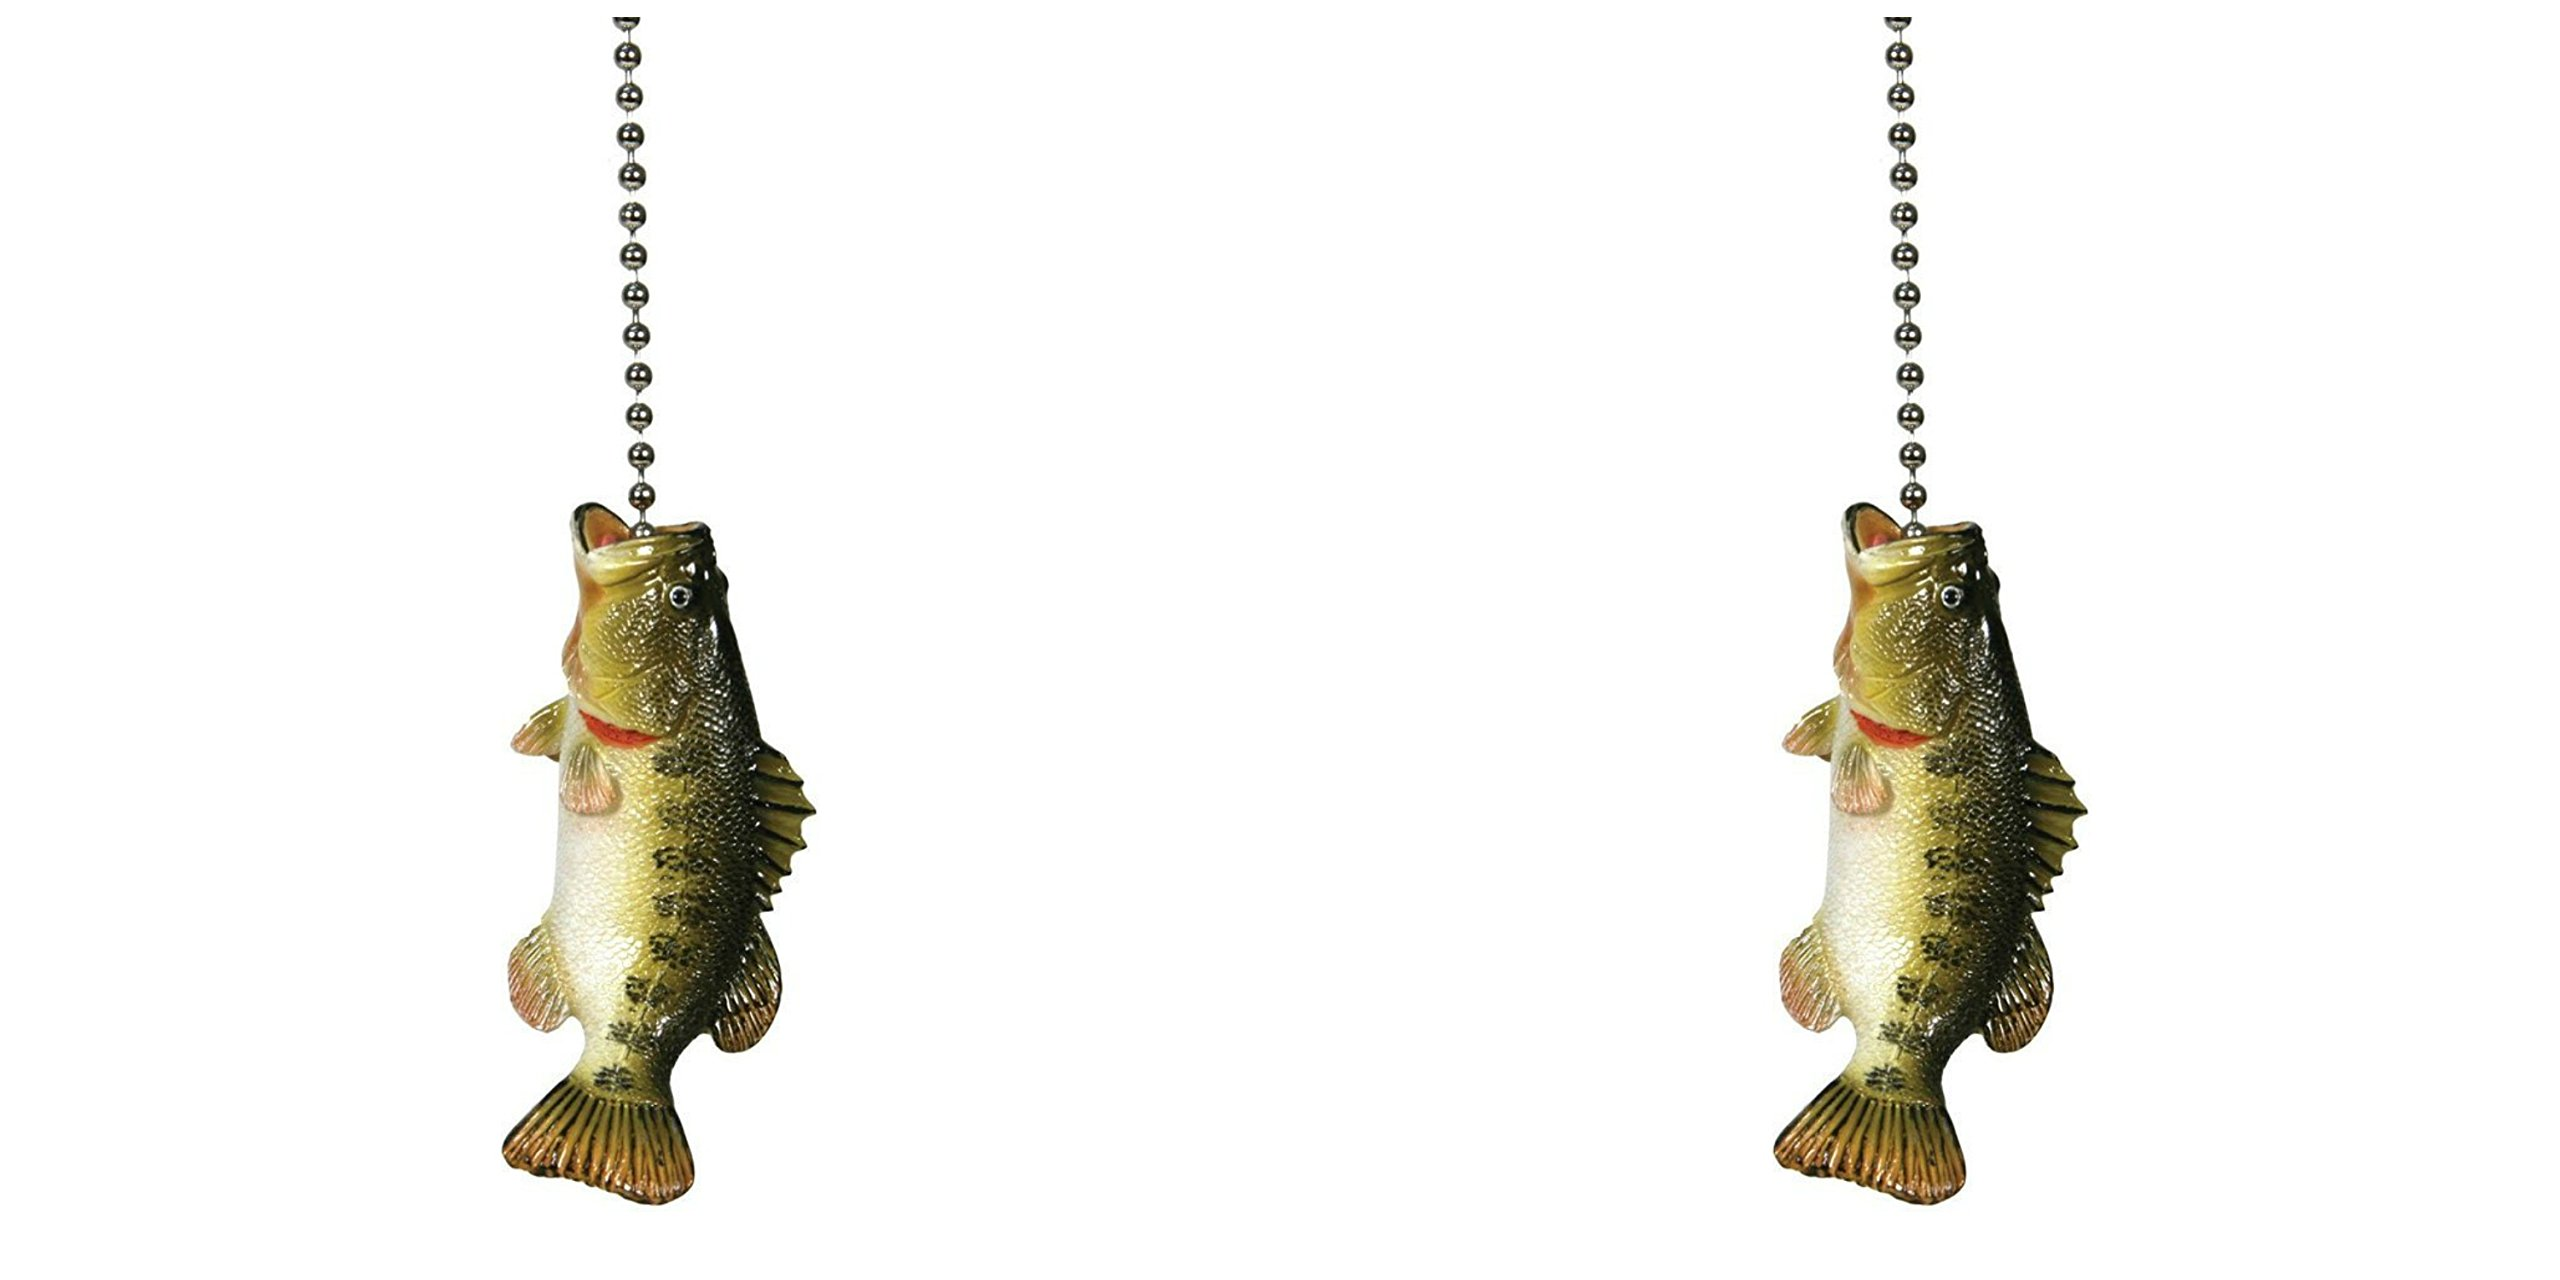 Large Mouth Bass Fishing Lodge Ceiling Fan Pull Light Chain 2 PACK